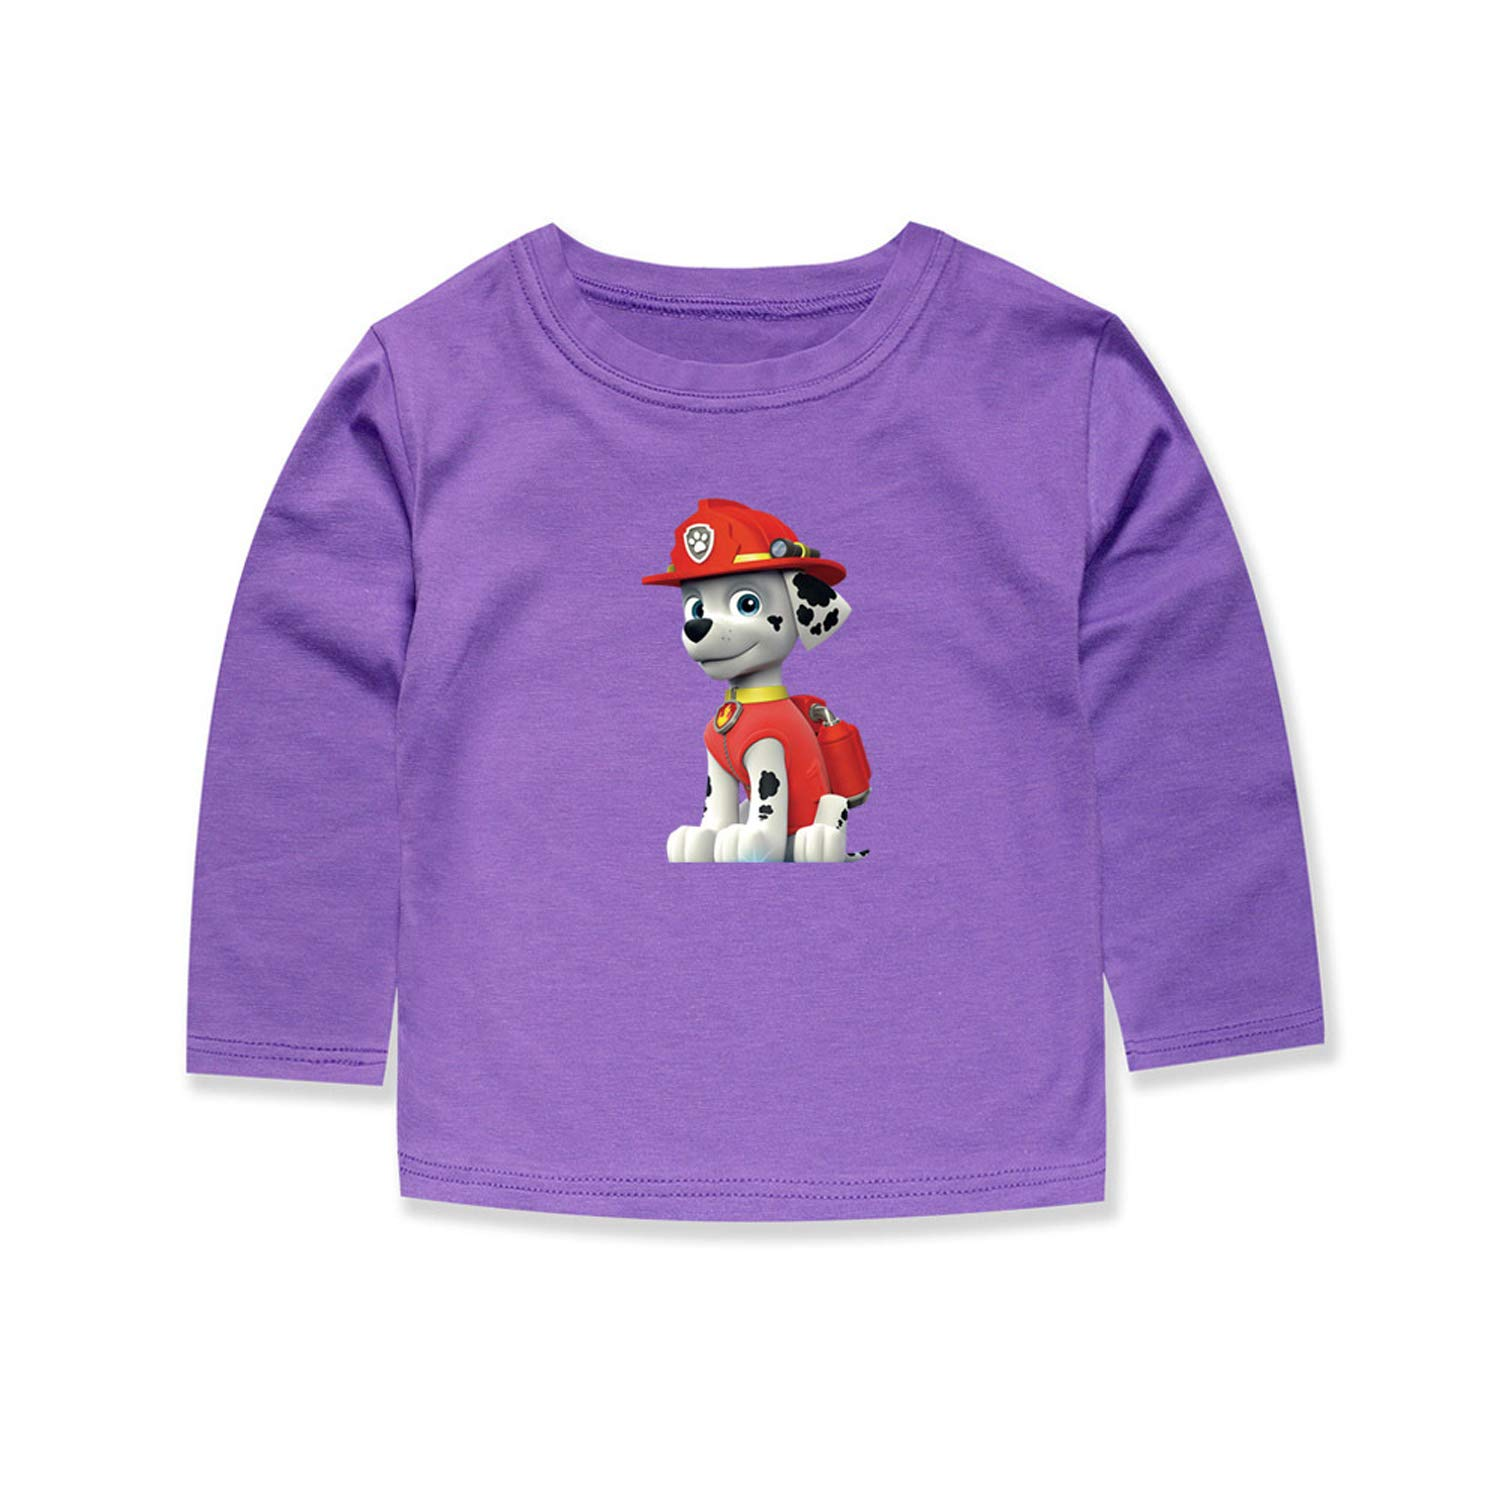 MININ Childrens Cute Dog Solid Color Printing Long Sleeve T-Shirt